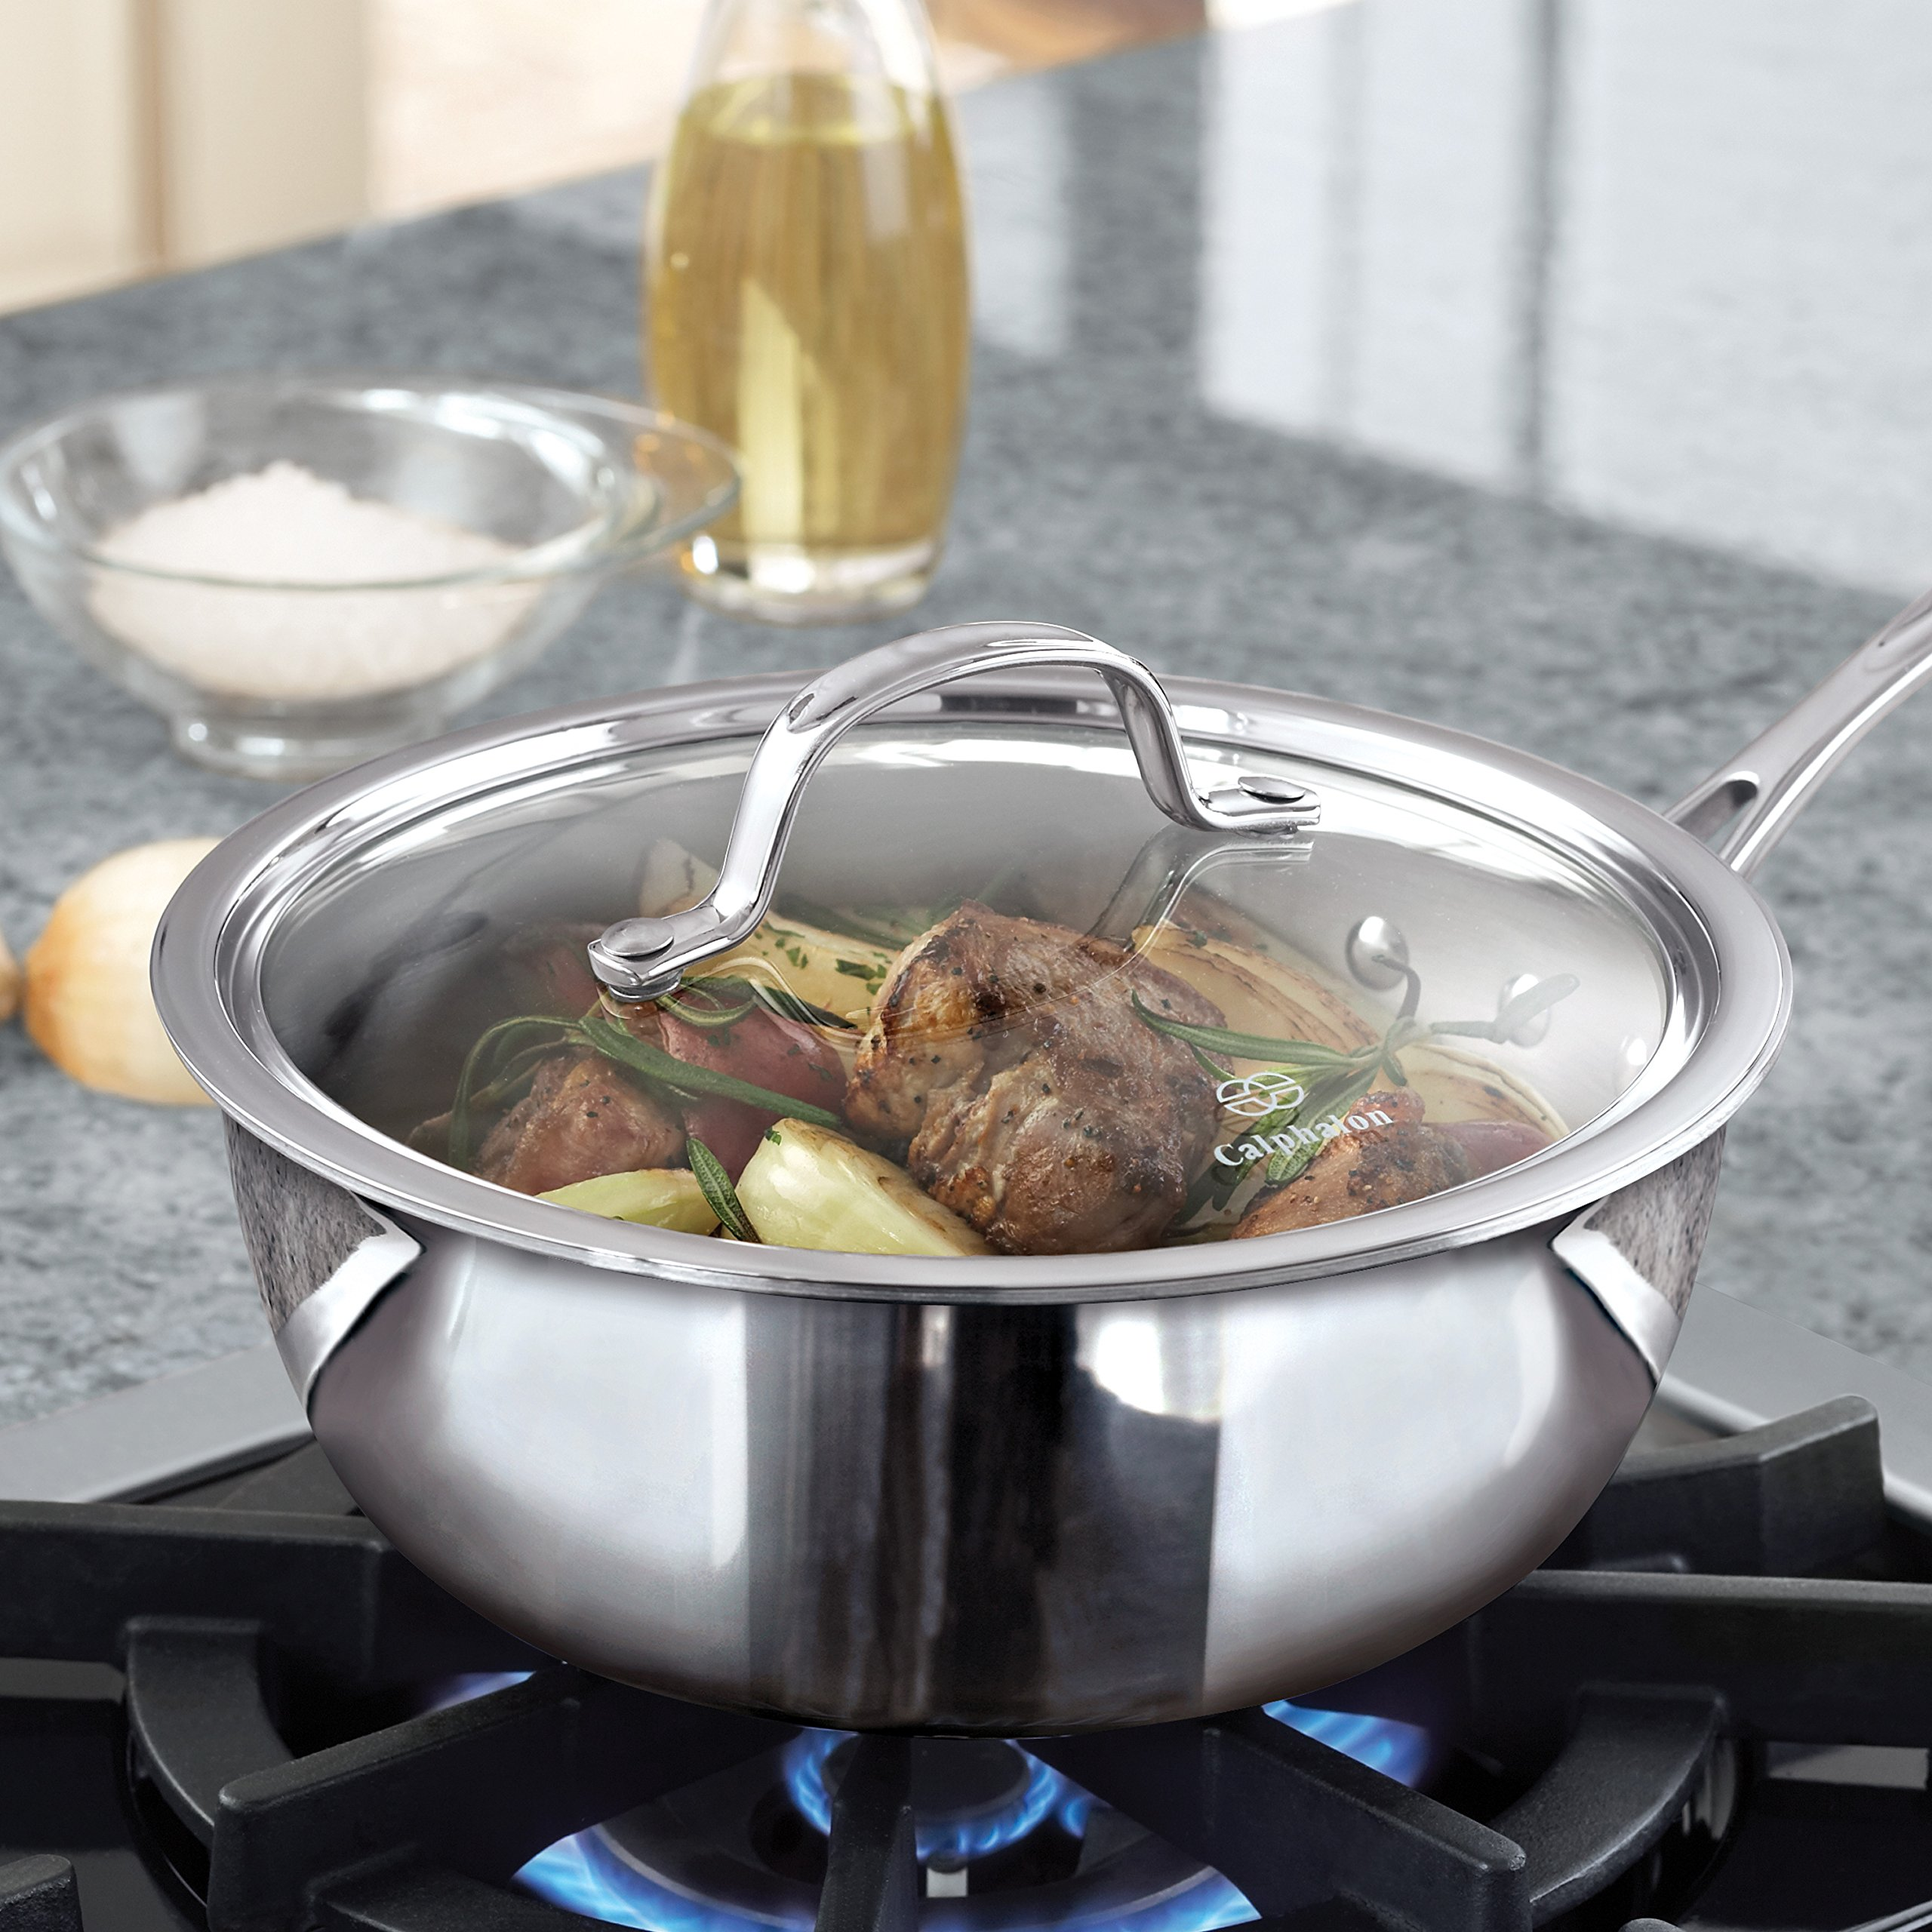 Calphalon Tri-Ply Stainless Steel Cookware, Chef's Pan, 3-quart by Calphalon (Image #5)